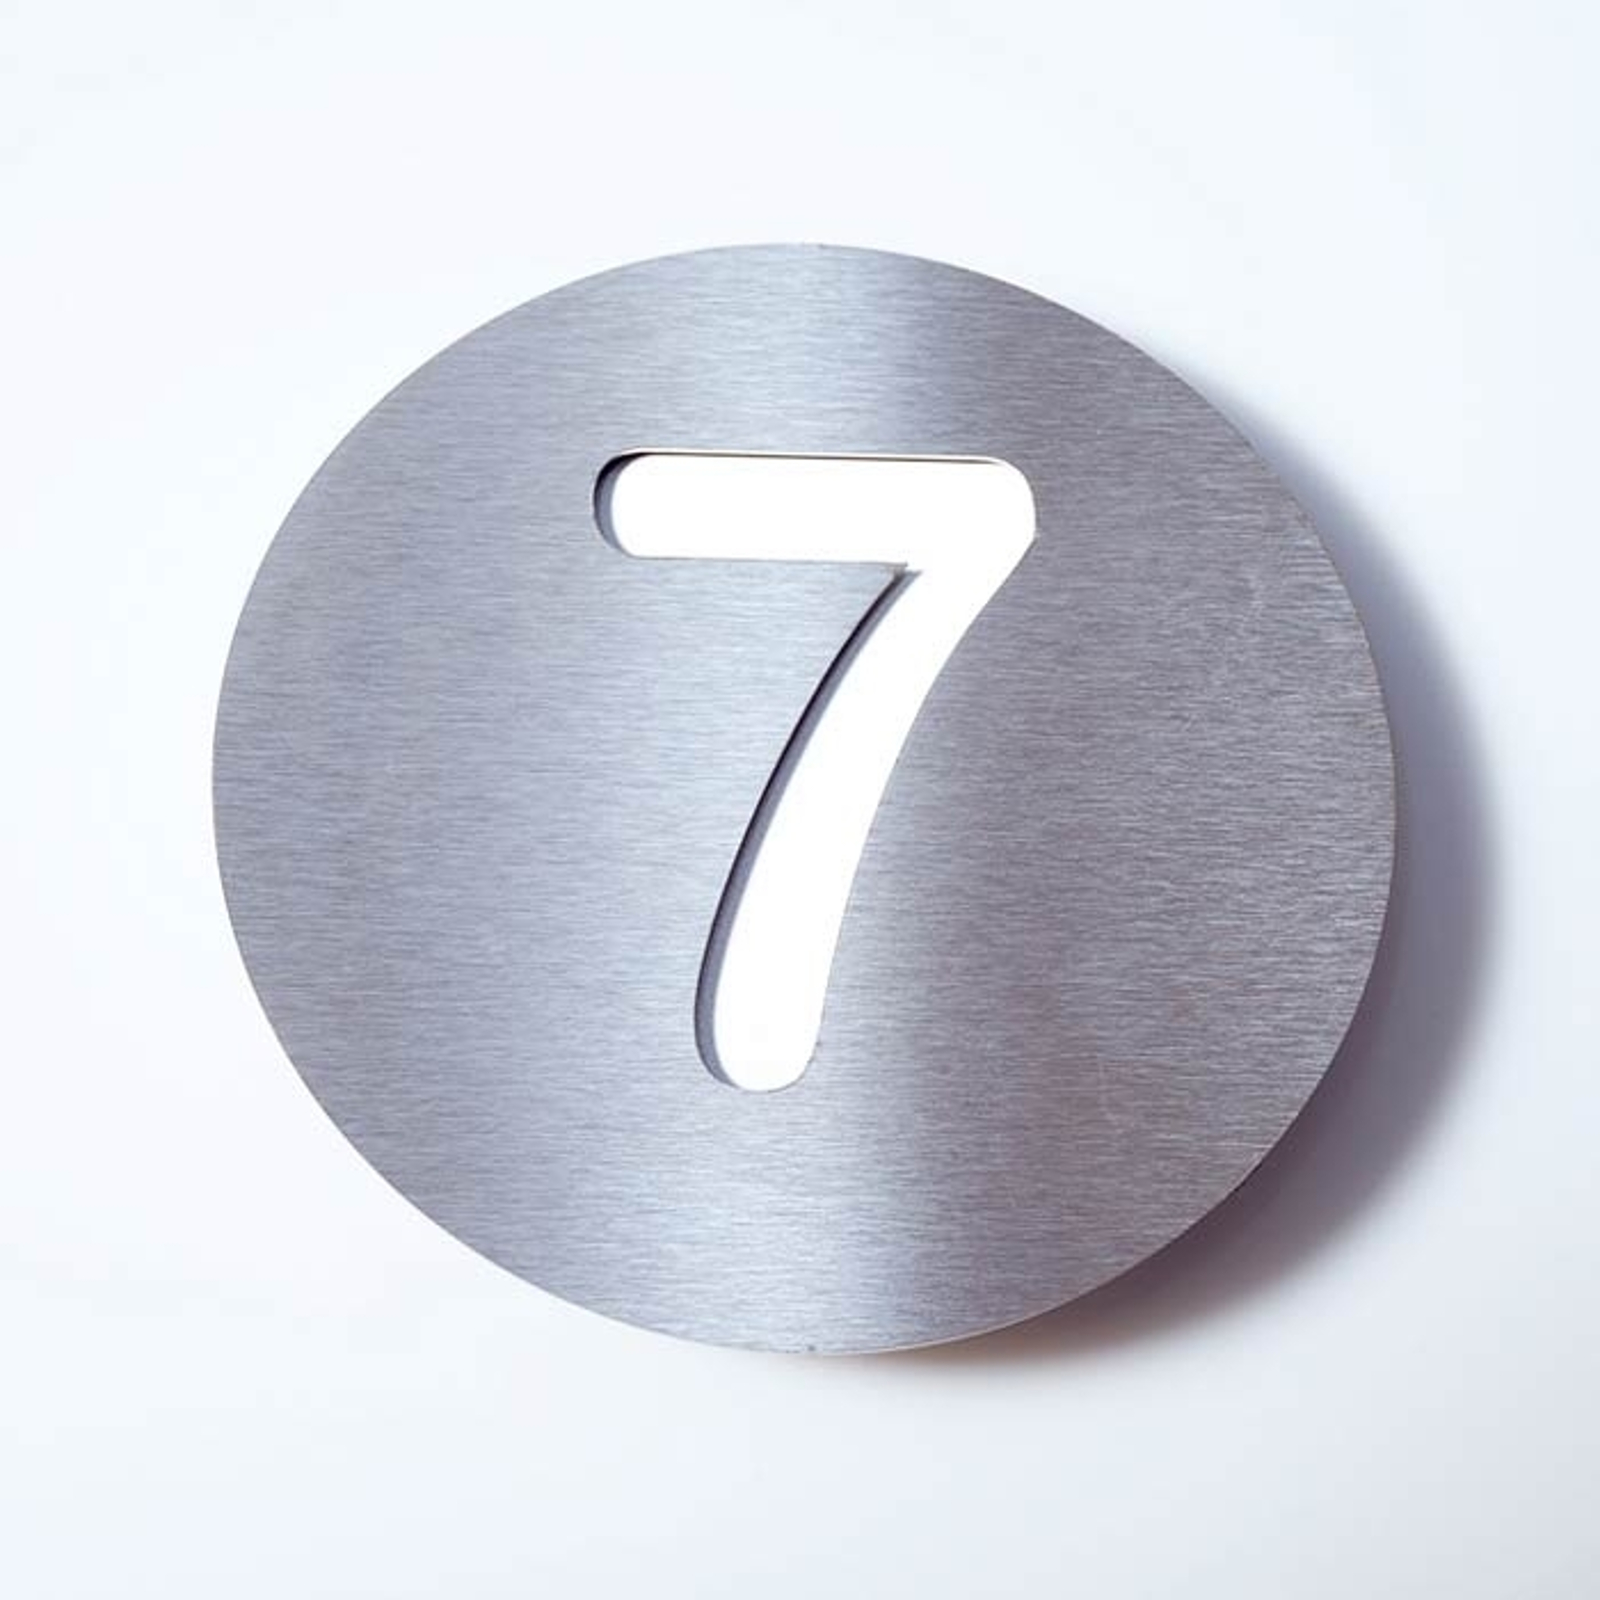 Stainless steel house number Round_1057085_1